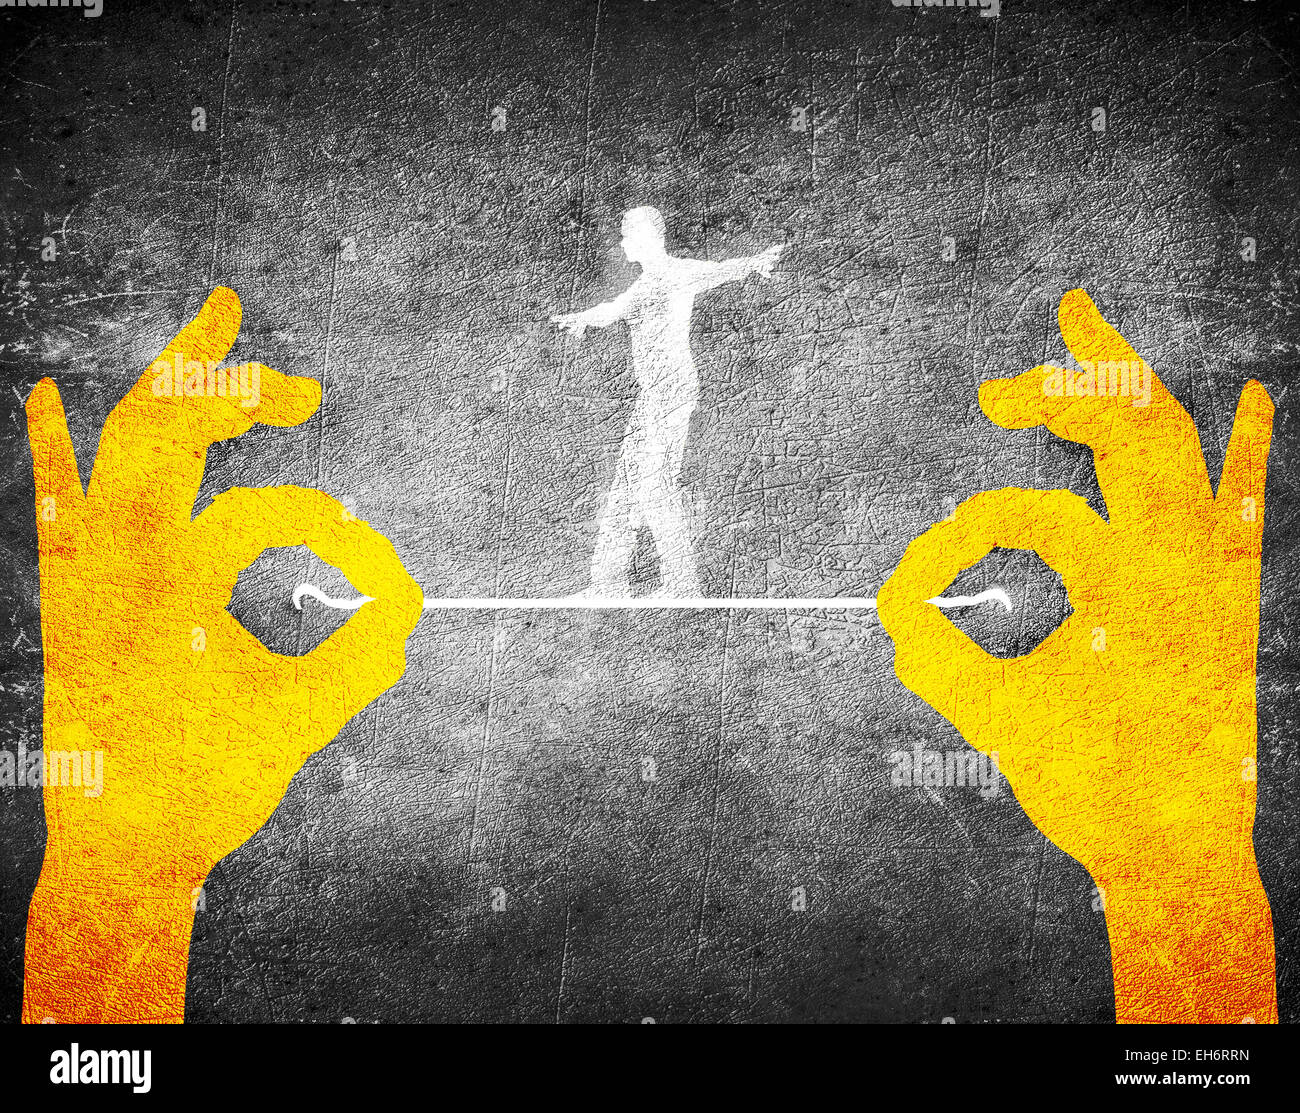 orange hands and tightrope walker - Stock Image